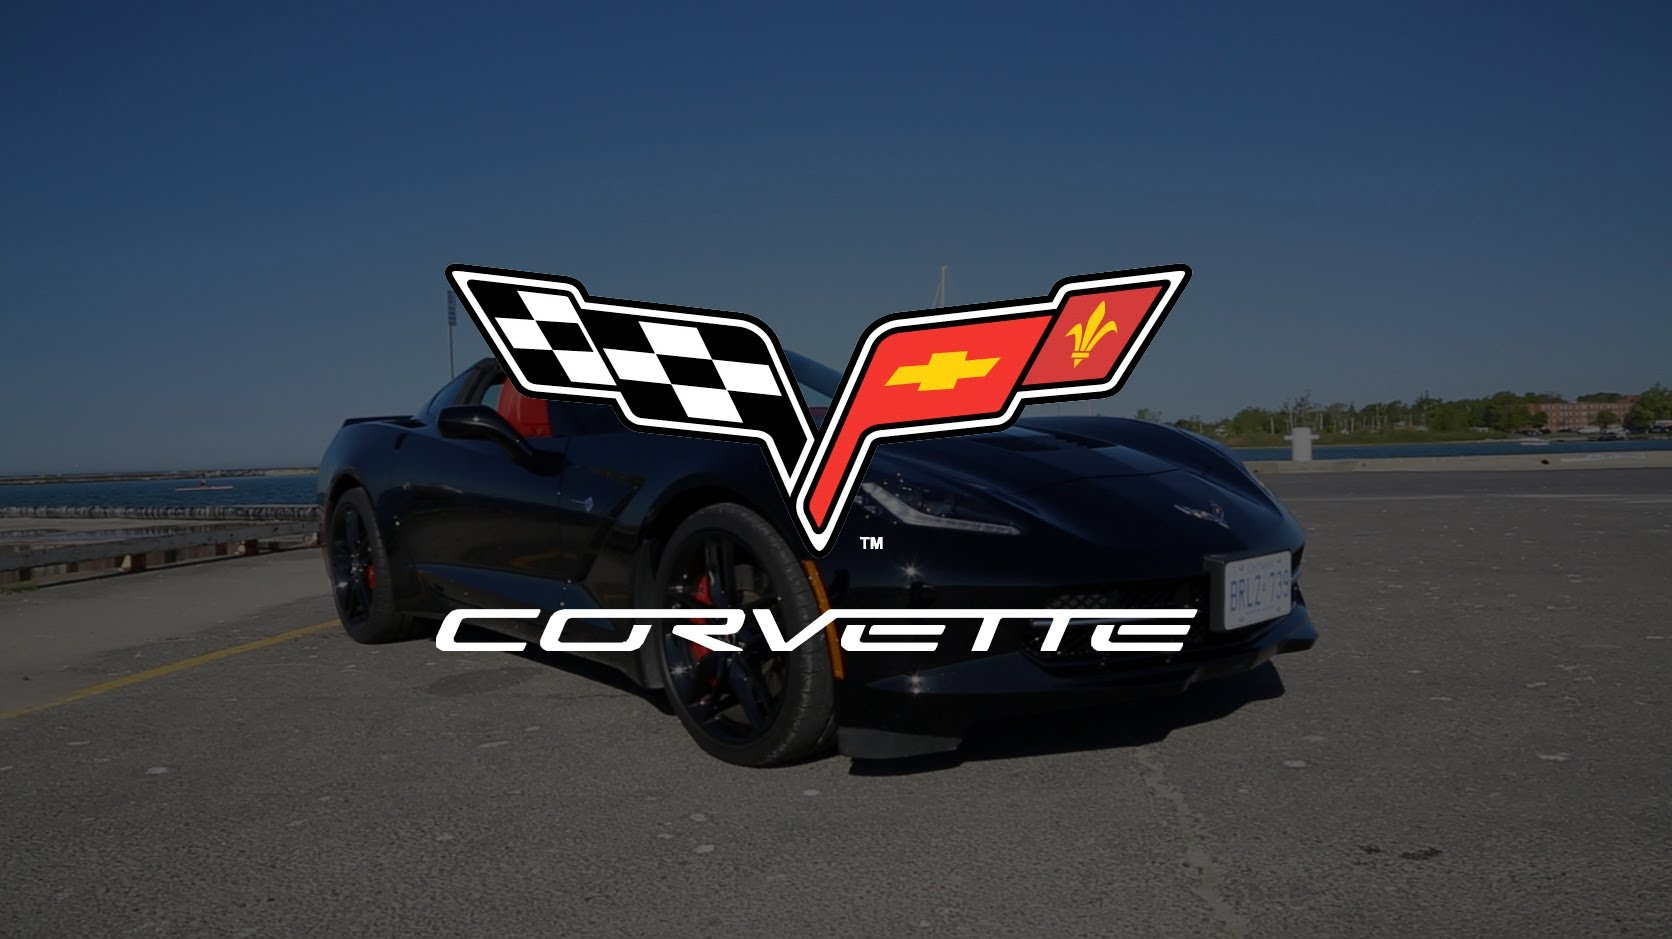 The NEW Corvette Stingray Review (feat. 1978 Corvette Stingray)